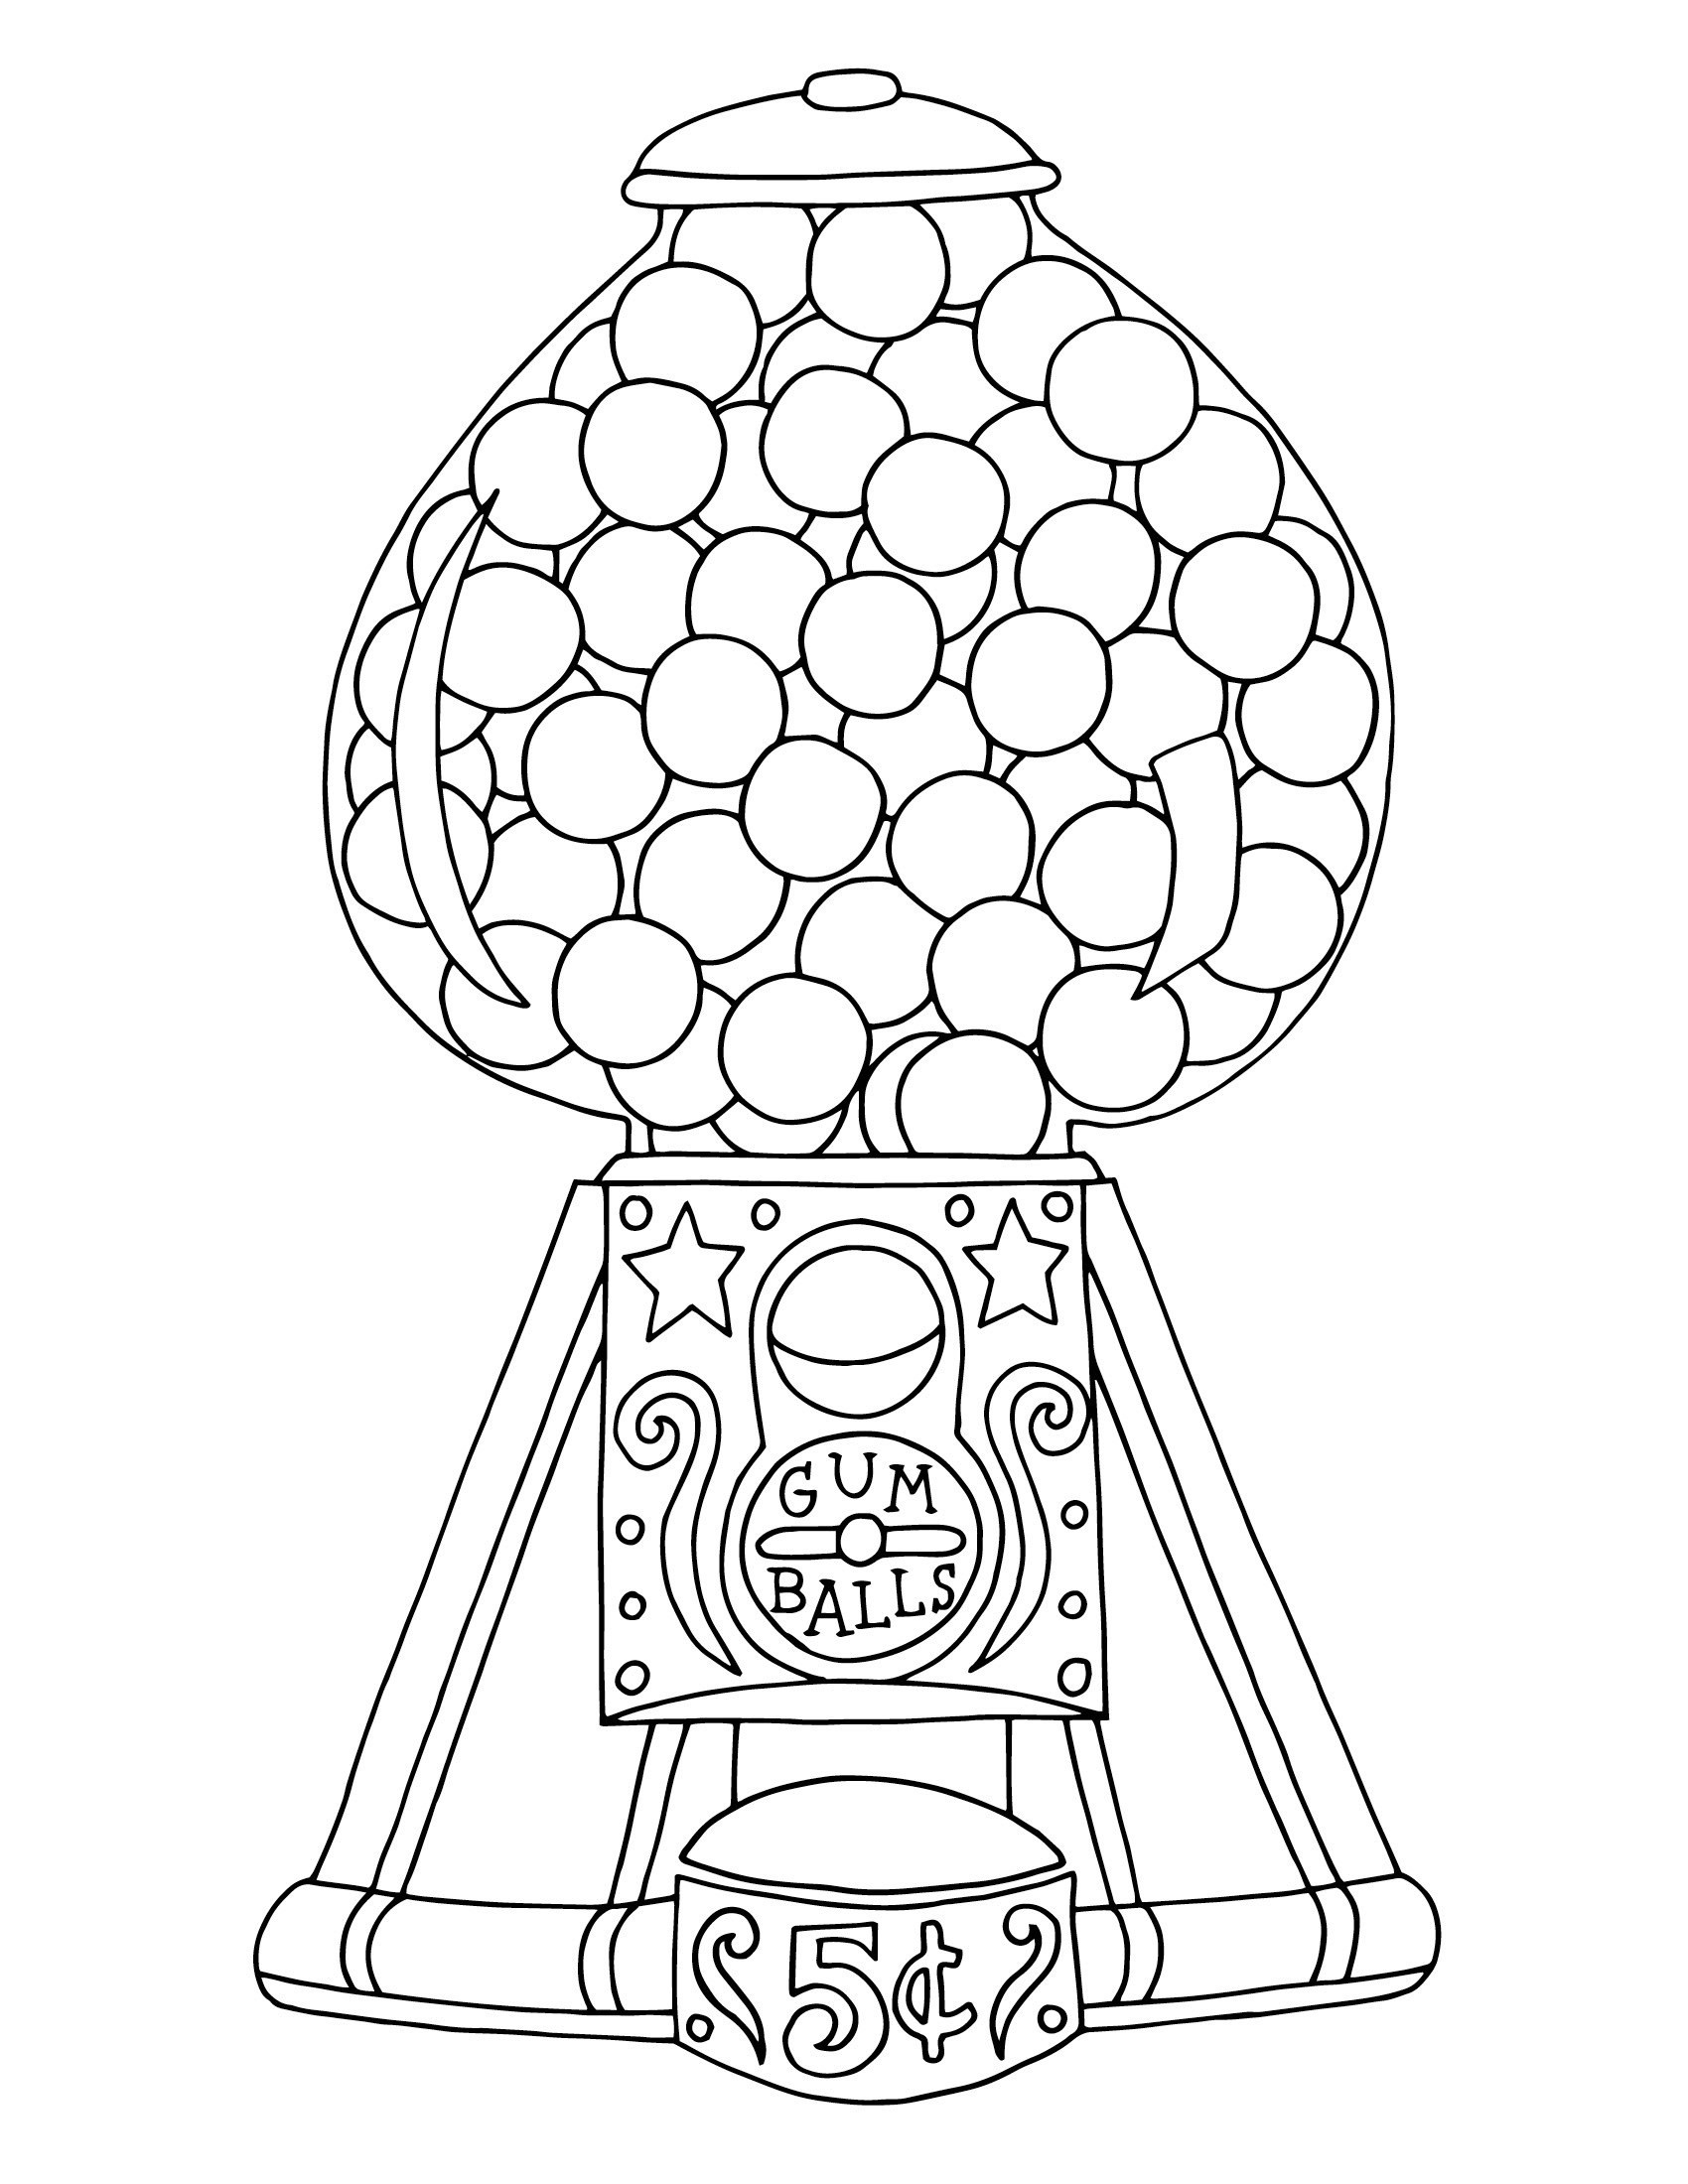 coloring sheet gumball machine coloring page gumball machine coloring page at getdrawings free download gumball coloring sheet coloring page machine